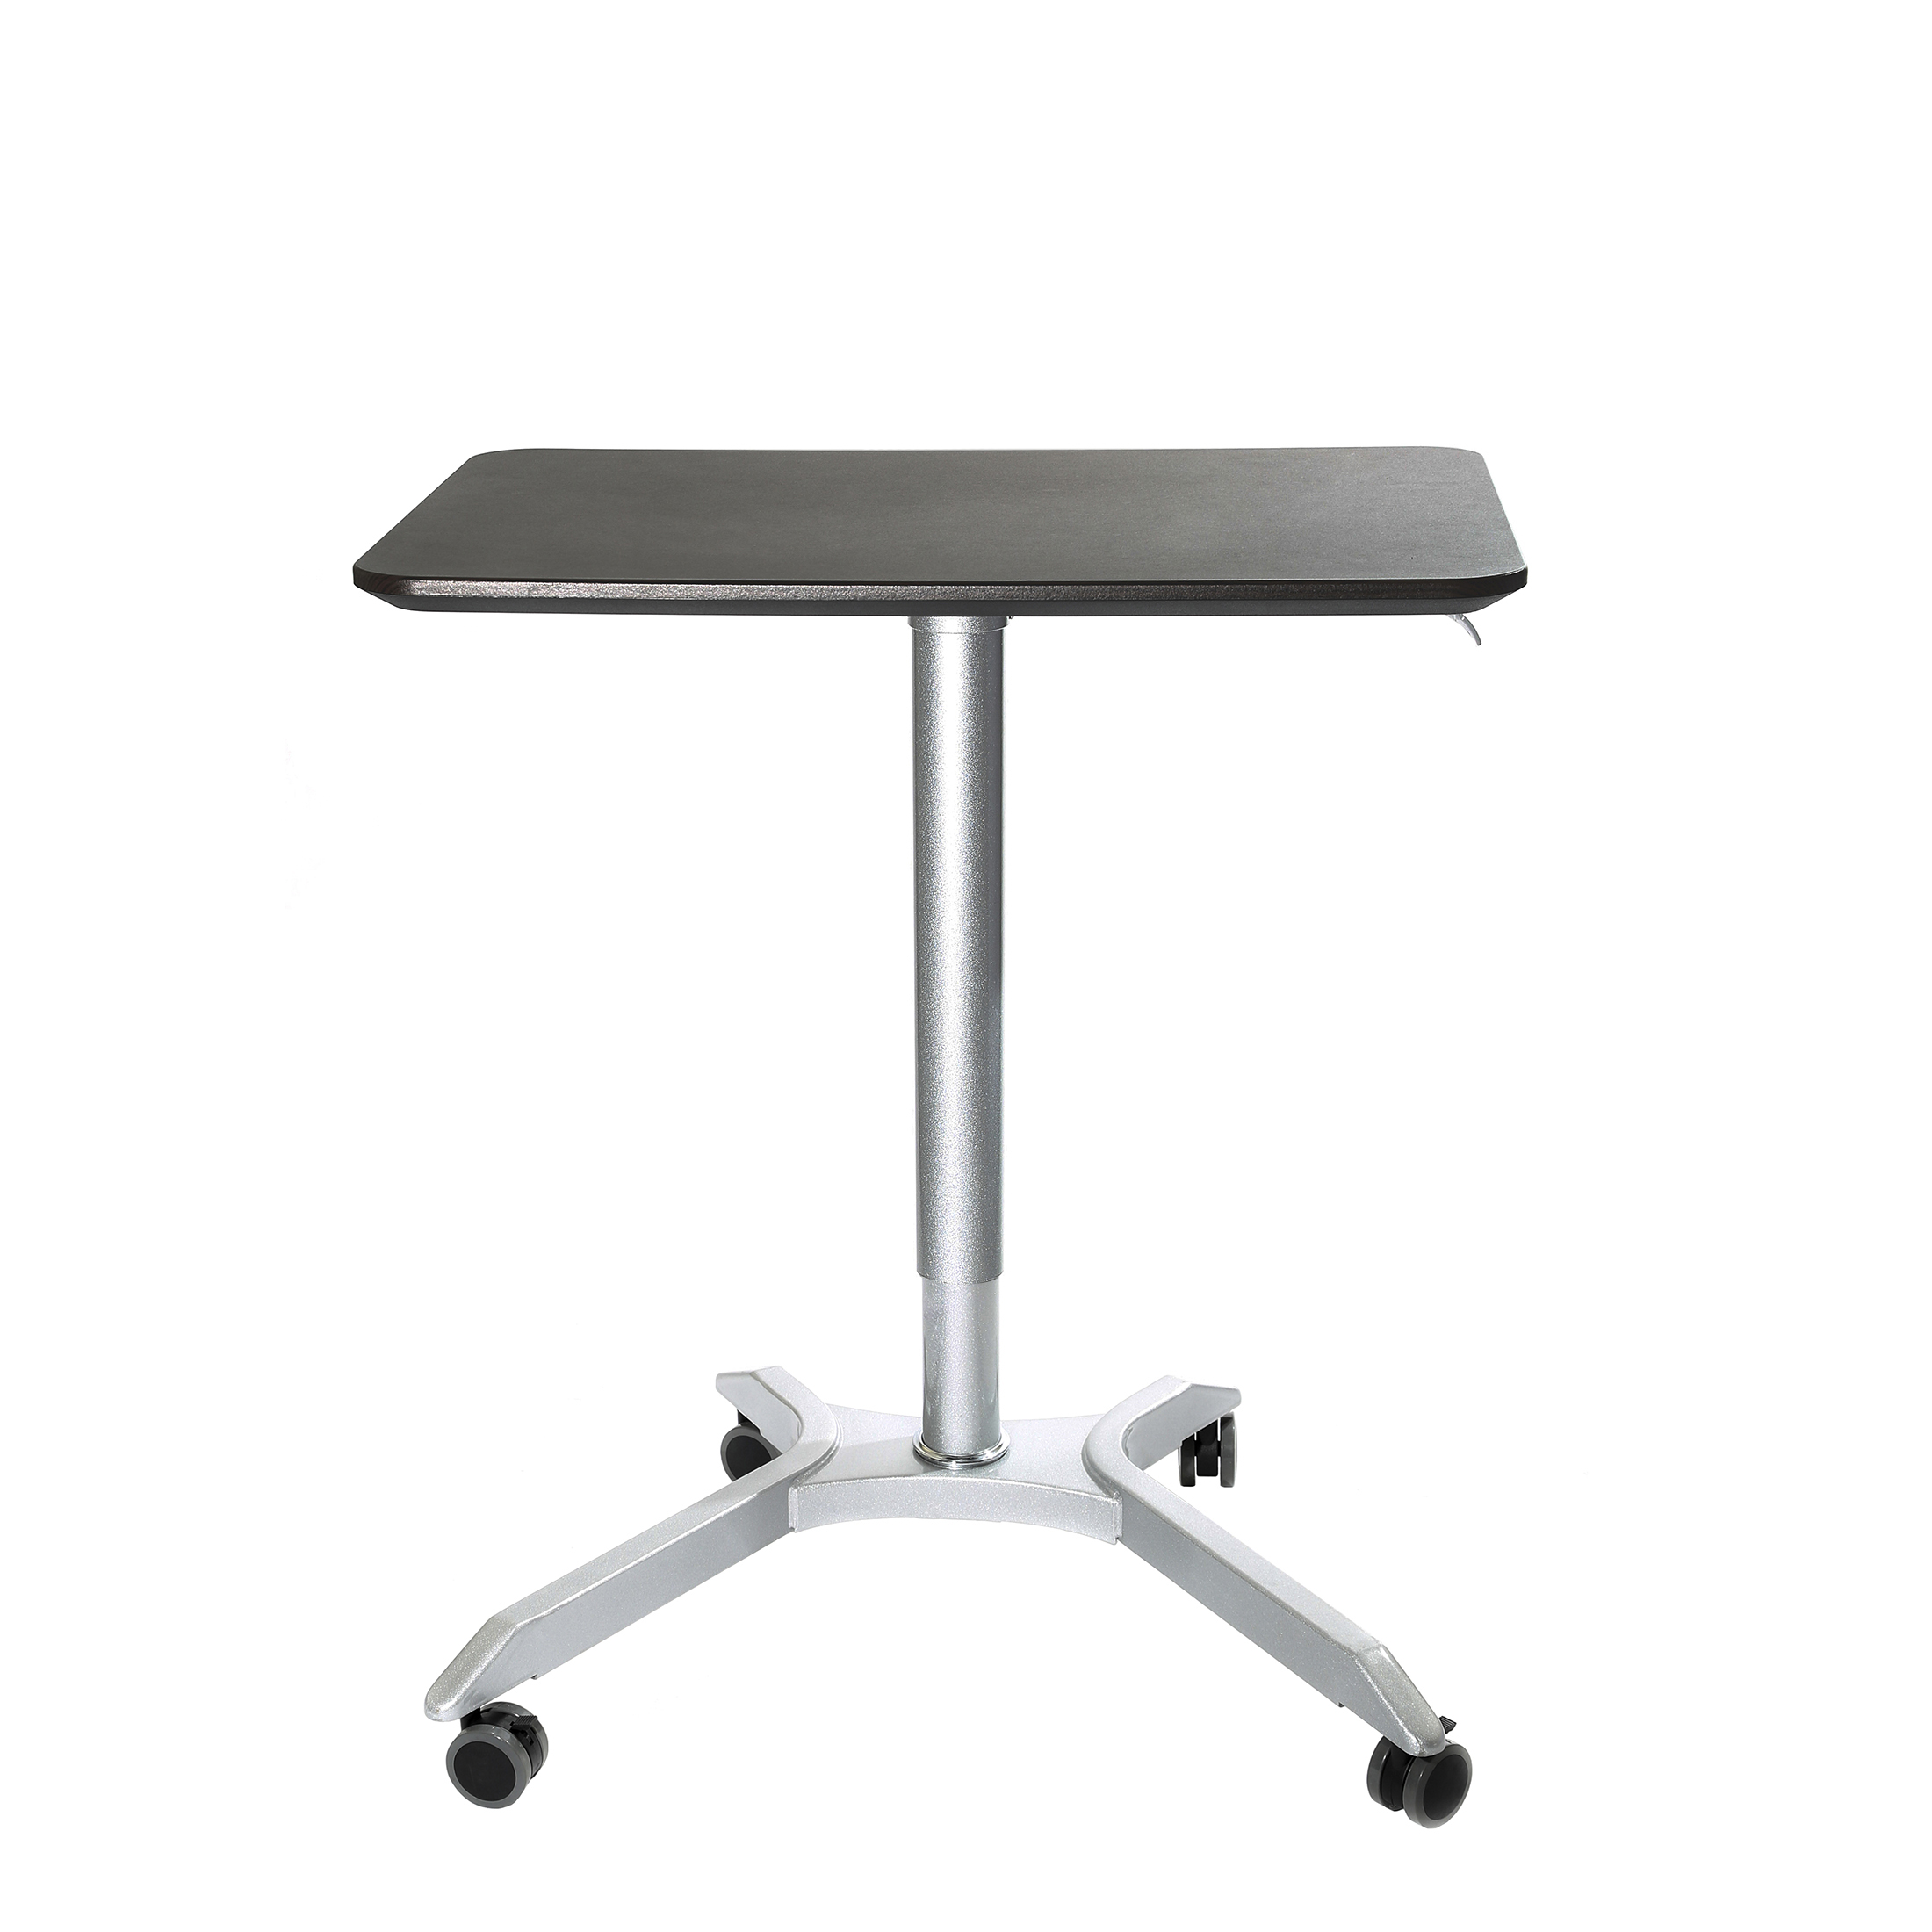 wholesale stand up office furniture online buy best stand up rh wholesaler alibaba com Office Desk Furniture Plans office furniture stand up desk